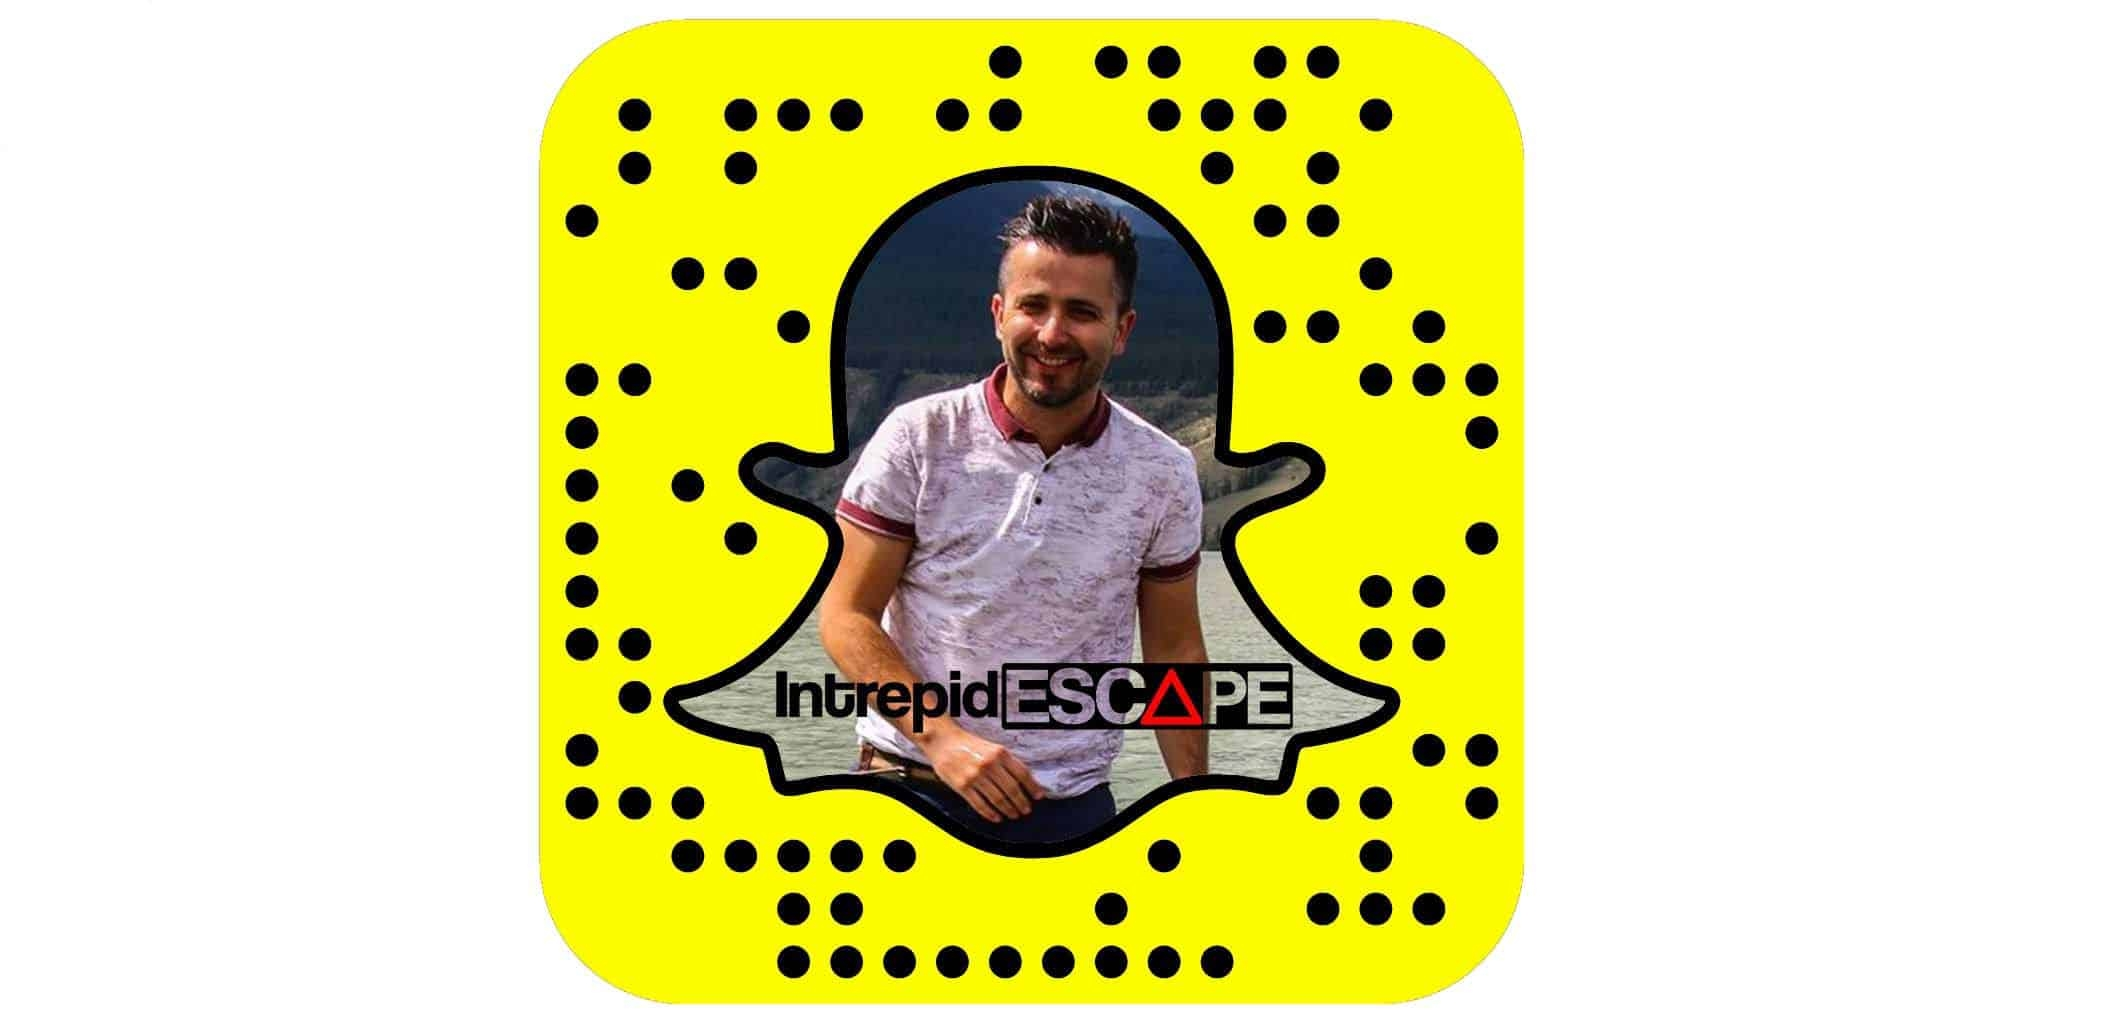 Snapchat Intrepid Escape2